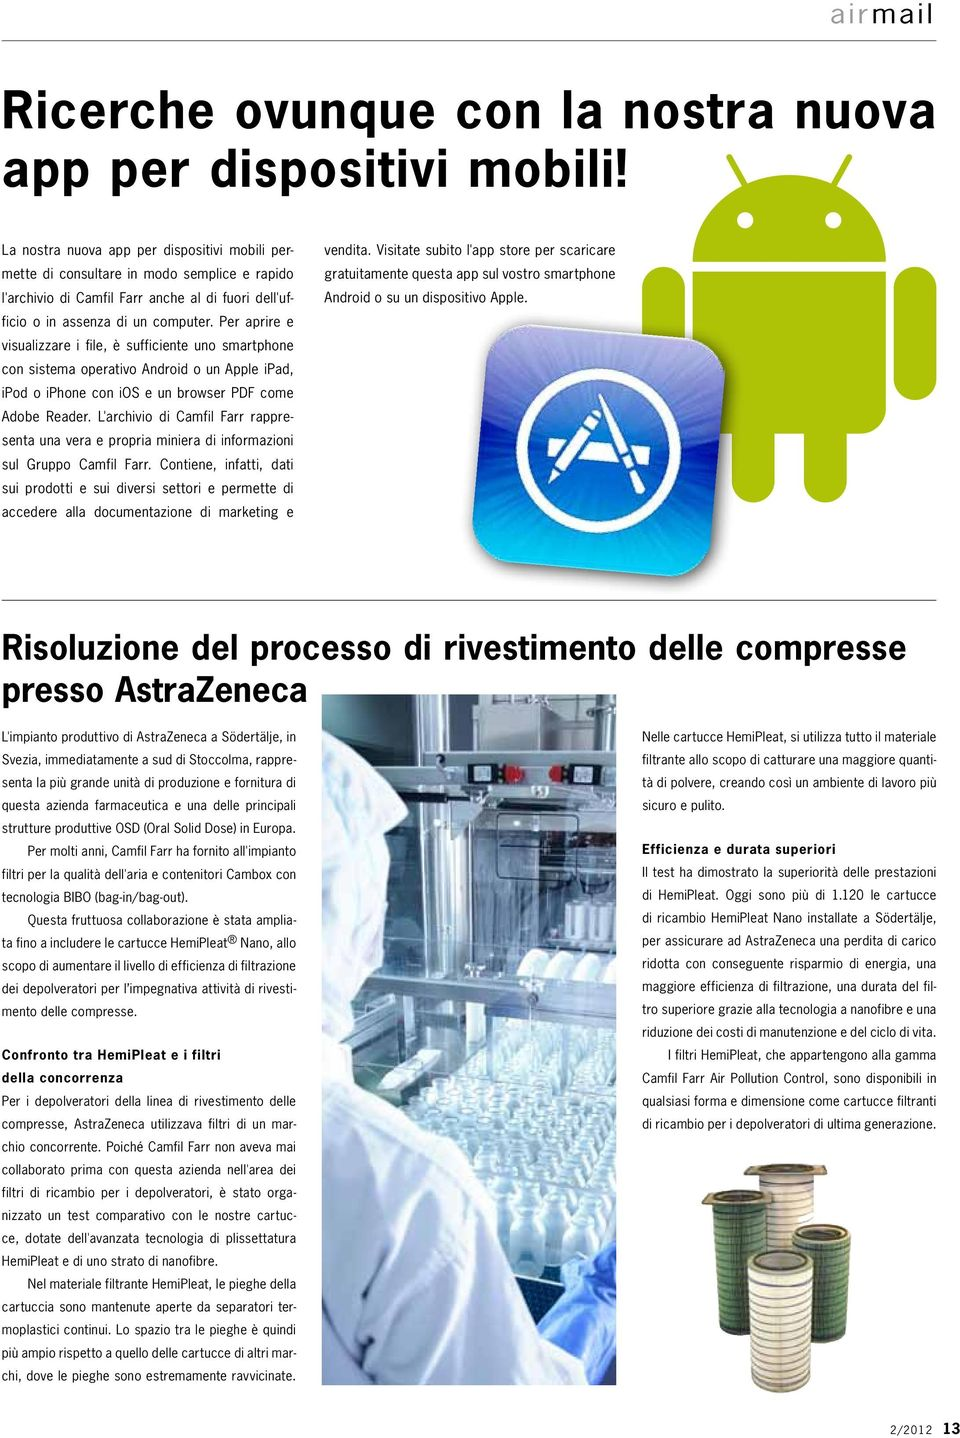 Per aprire e visualizzare i file, è sufficiente uno smartphone con sistema operativo Android o un Apple ipad, ipod o iphone con ios e un browser PDF come Adobe Reader.